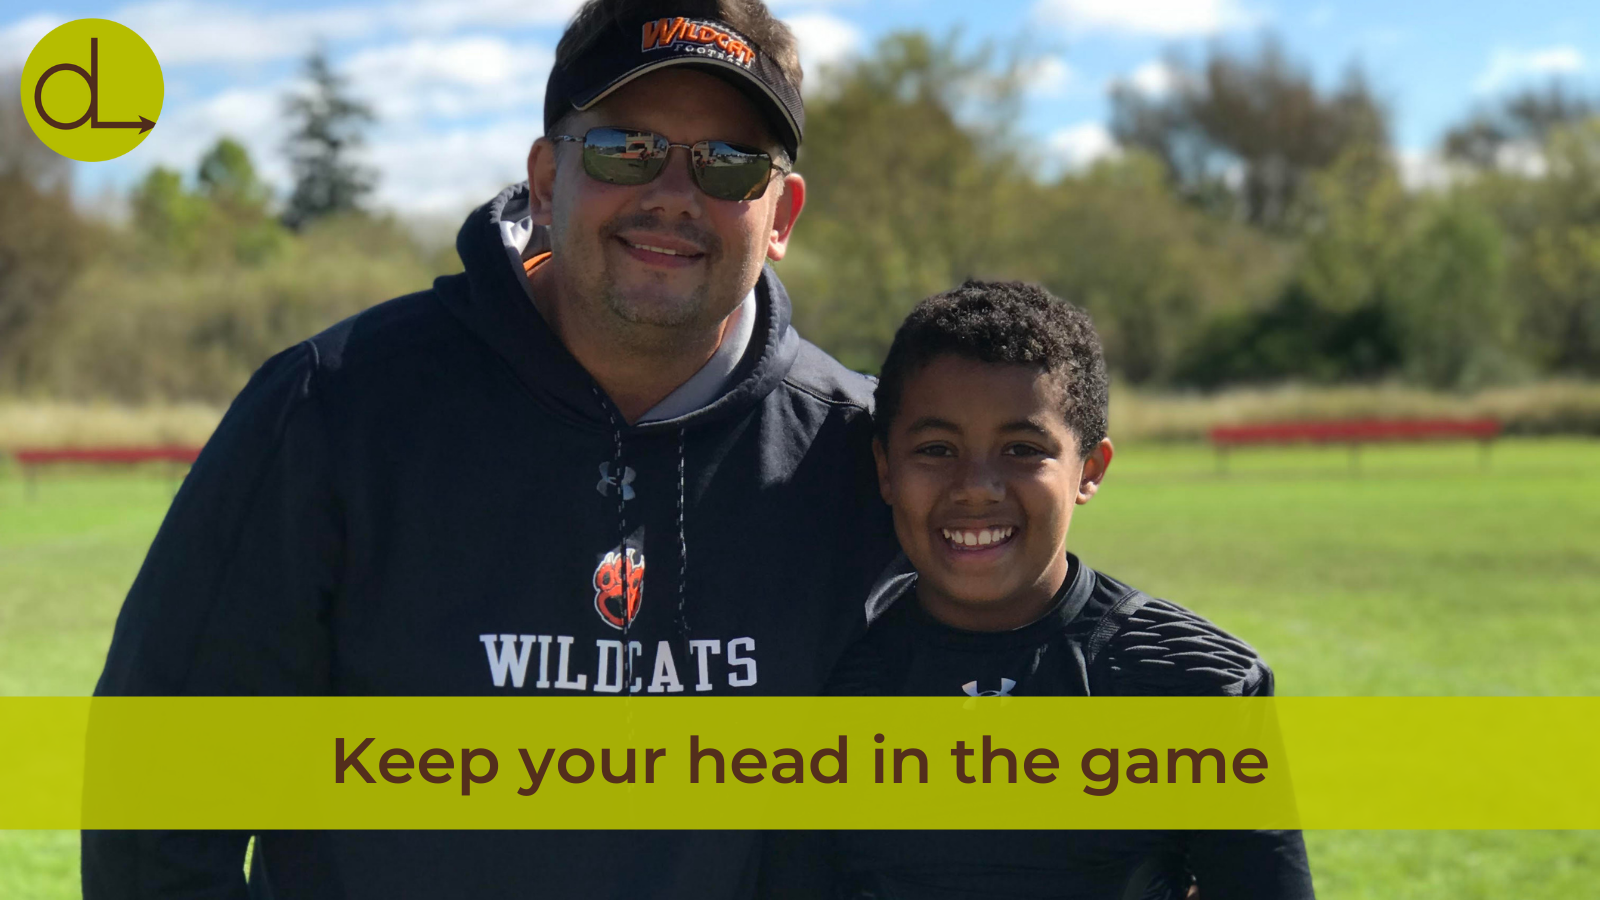 Brian Yaucher and his son at Football Practice. Title reads: Keep your head in the game.